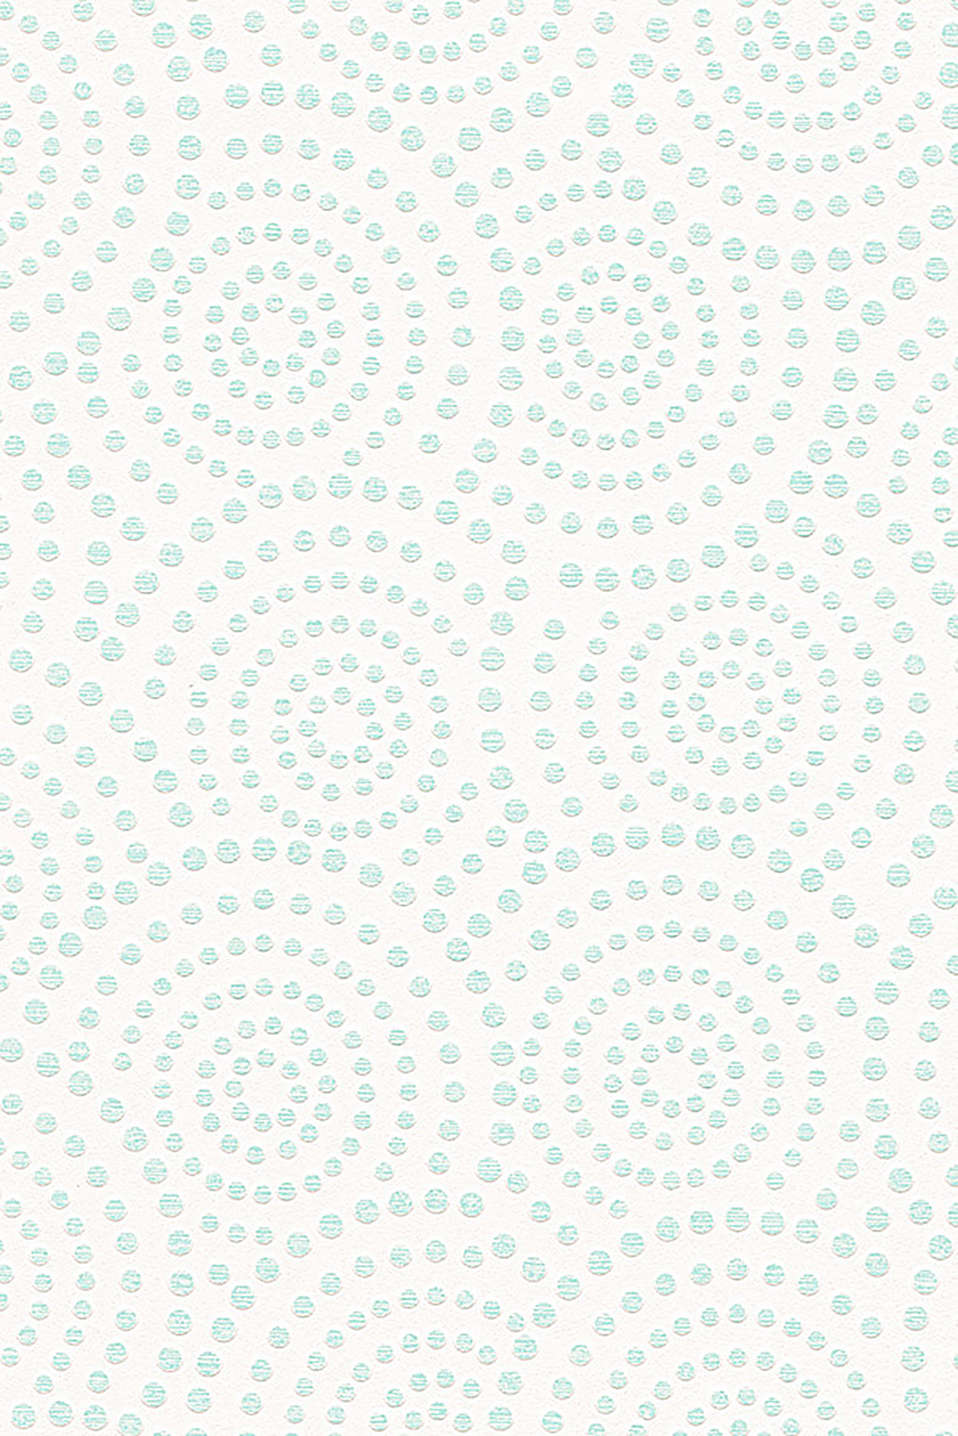 Esprit - Non-woven wallpaper, geometric pattern